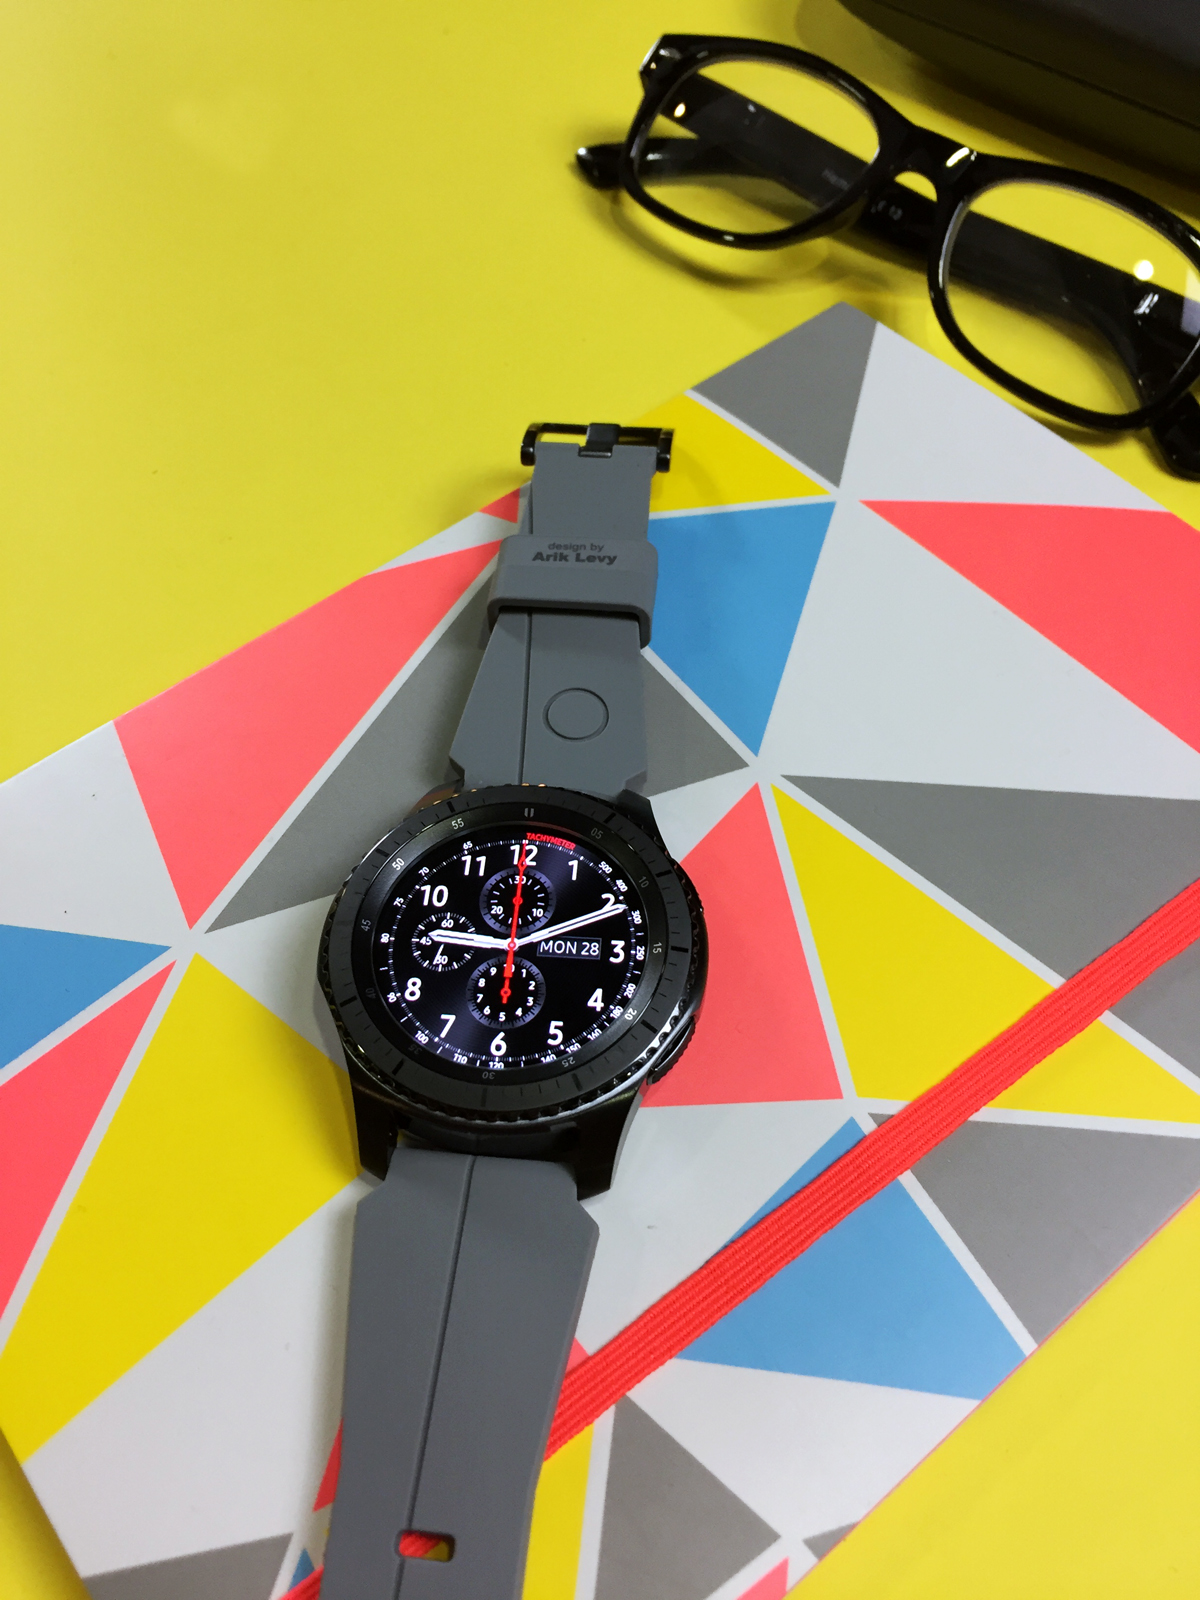 samsung-gear-s3-test-avis-prix-montre-connectee-critique-photo-by-blog-united-states-of-paris